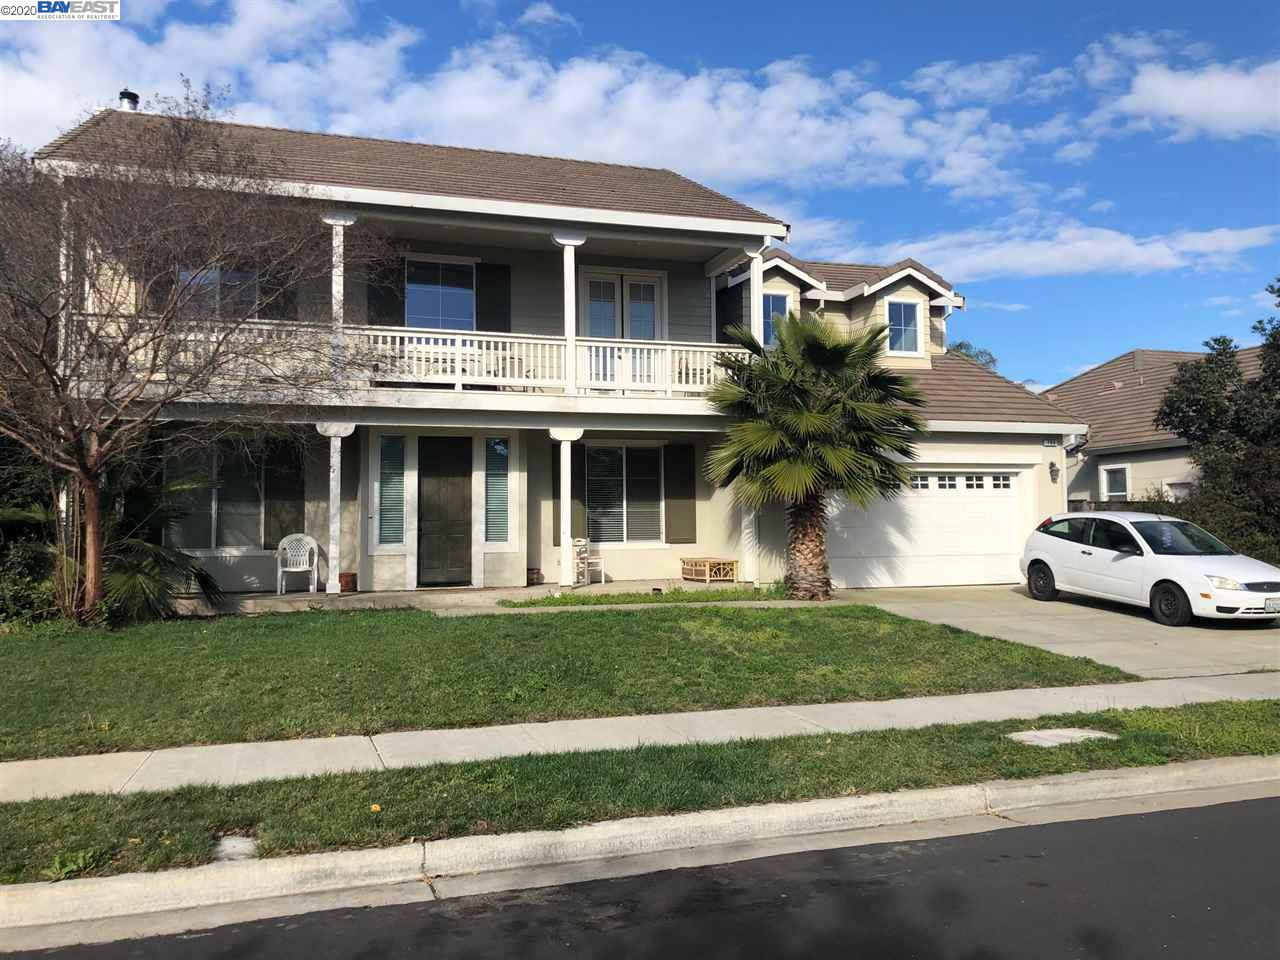 790 Begonia Dr, BRENTWOOD, CA 94513